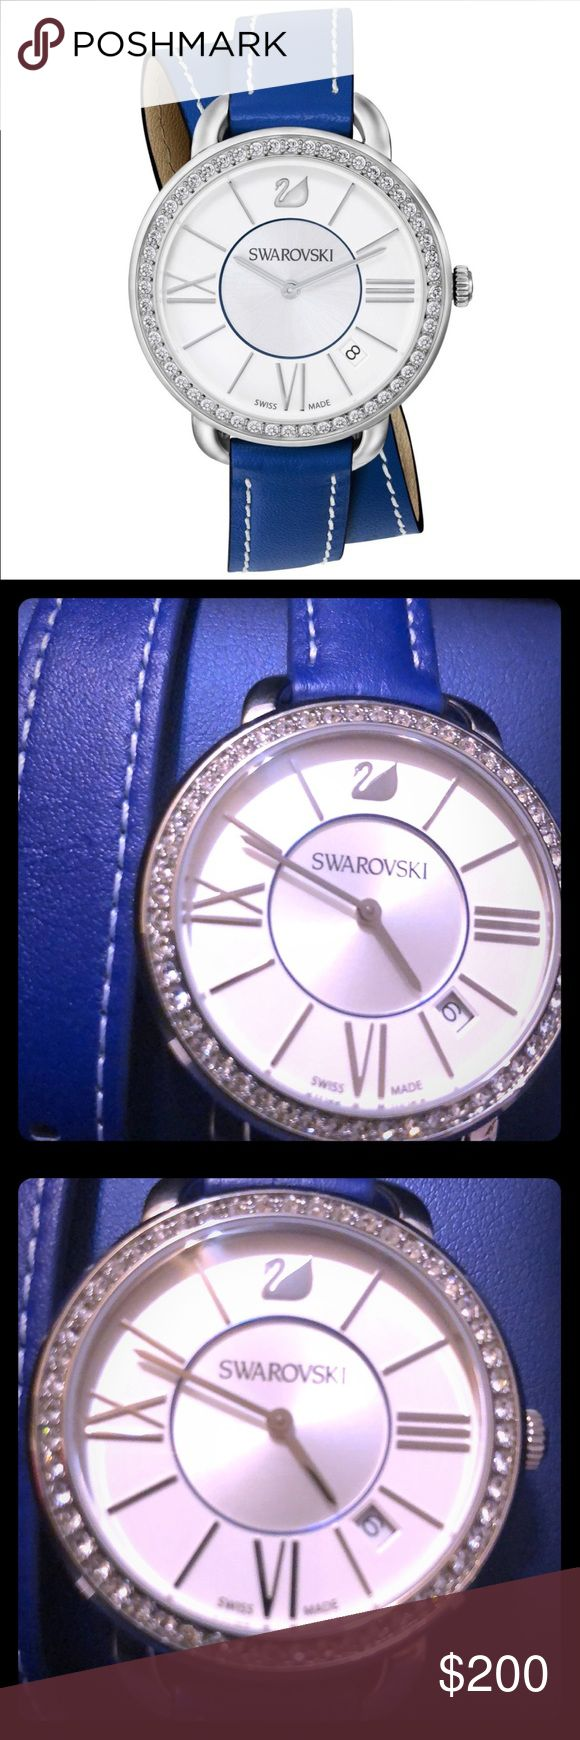 Swarovski Aila Double Wrap Leather fine watch Featuring a double blue strap this feminine watch will add a trendy touch of sparkle and color to your wrist. Case : stainless steel with 52 clear crystals. Size 37mm. Dial : white silver sunray with a matt white silver outer bezel silver plated index markers and Roman numerals at 3 6 and 9 oclock.  Strap : blue calfskin leather double tour with white stitching.  Water resistant.  Movement : Swiss Quartz. Brand new in box never worn $344.USD…